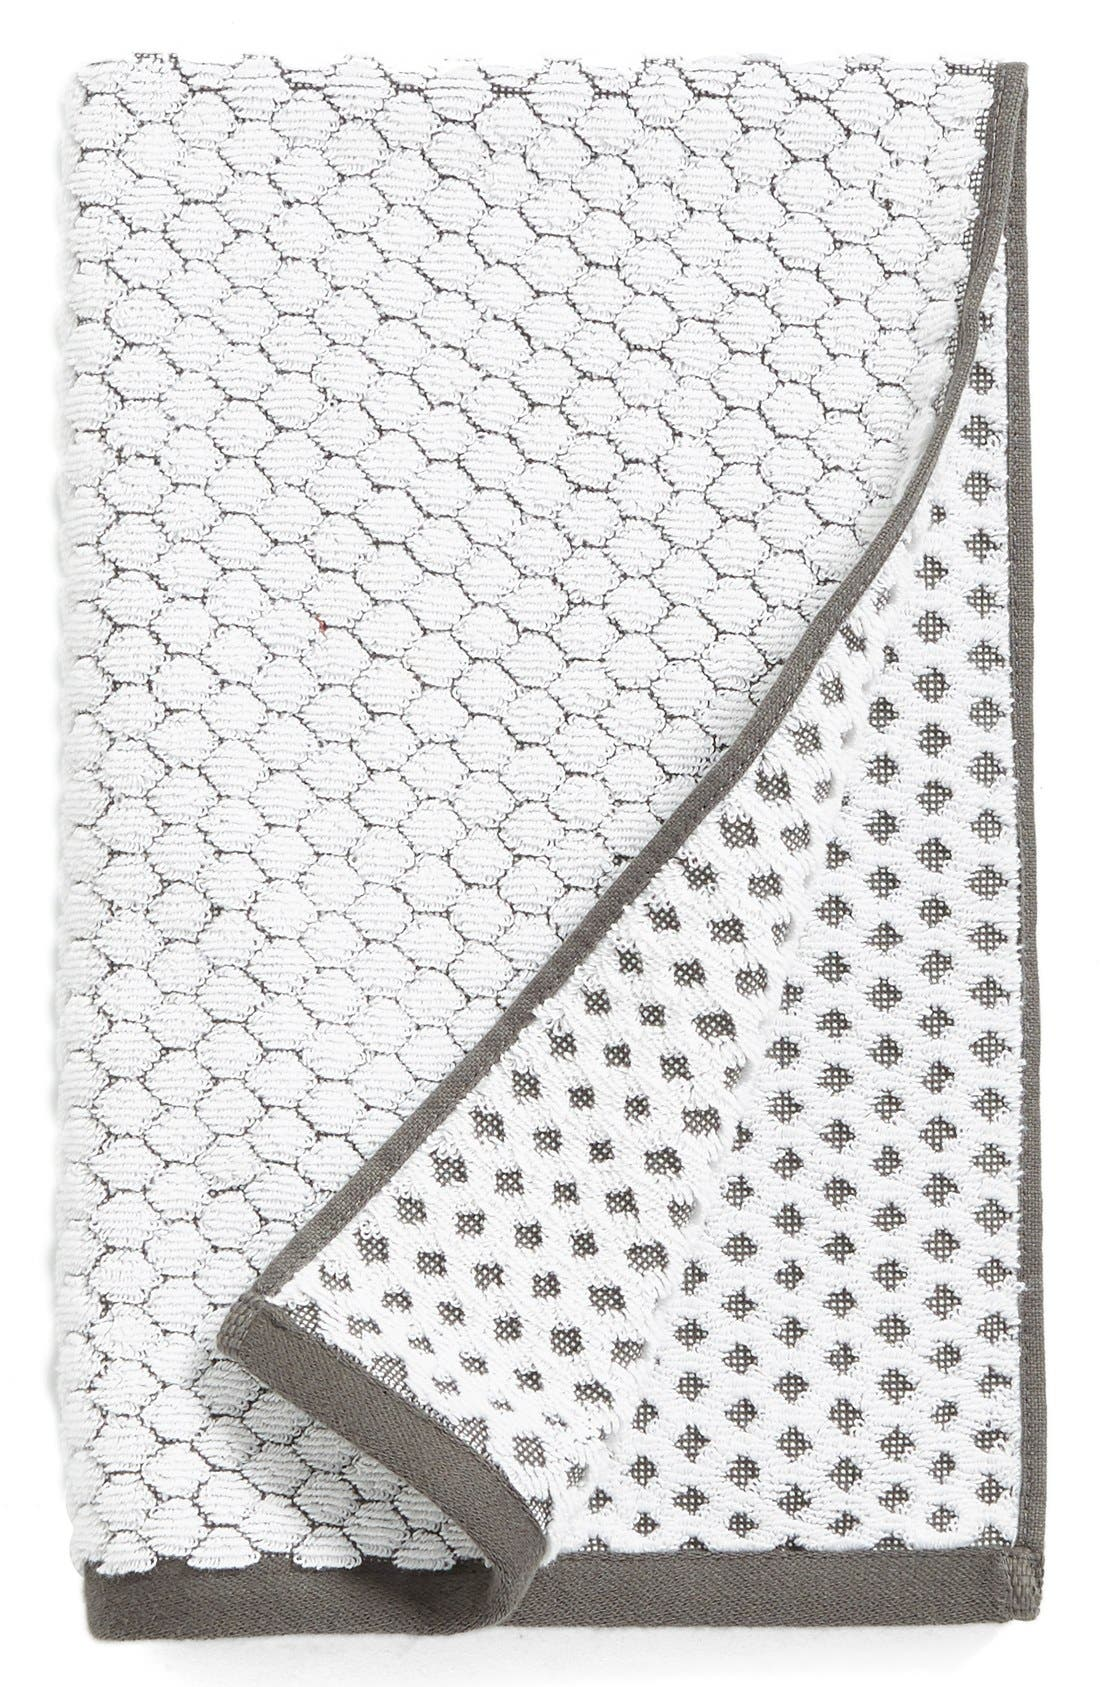 NORDSTROM AT HOME 'Cobble' Hand Towel